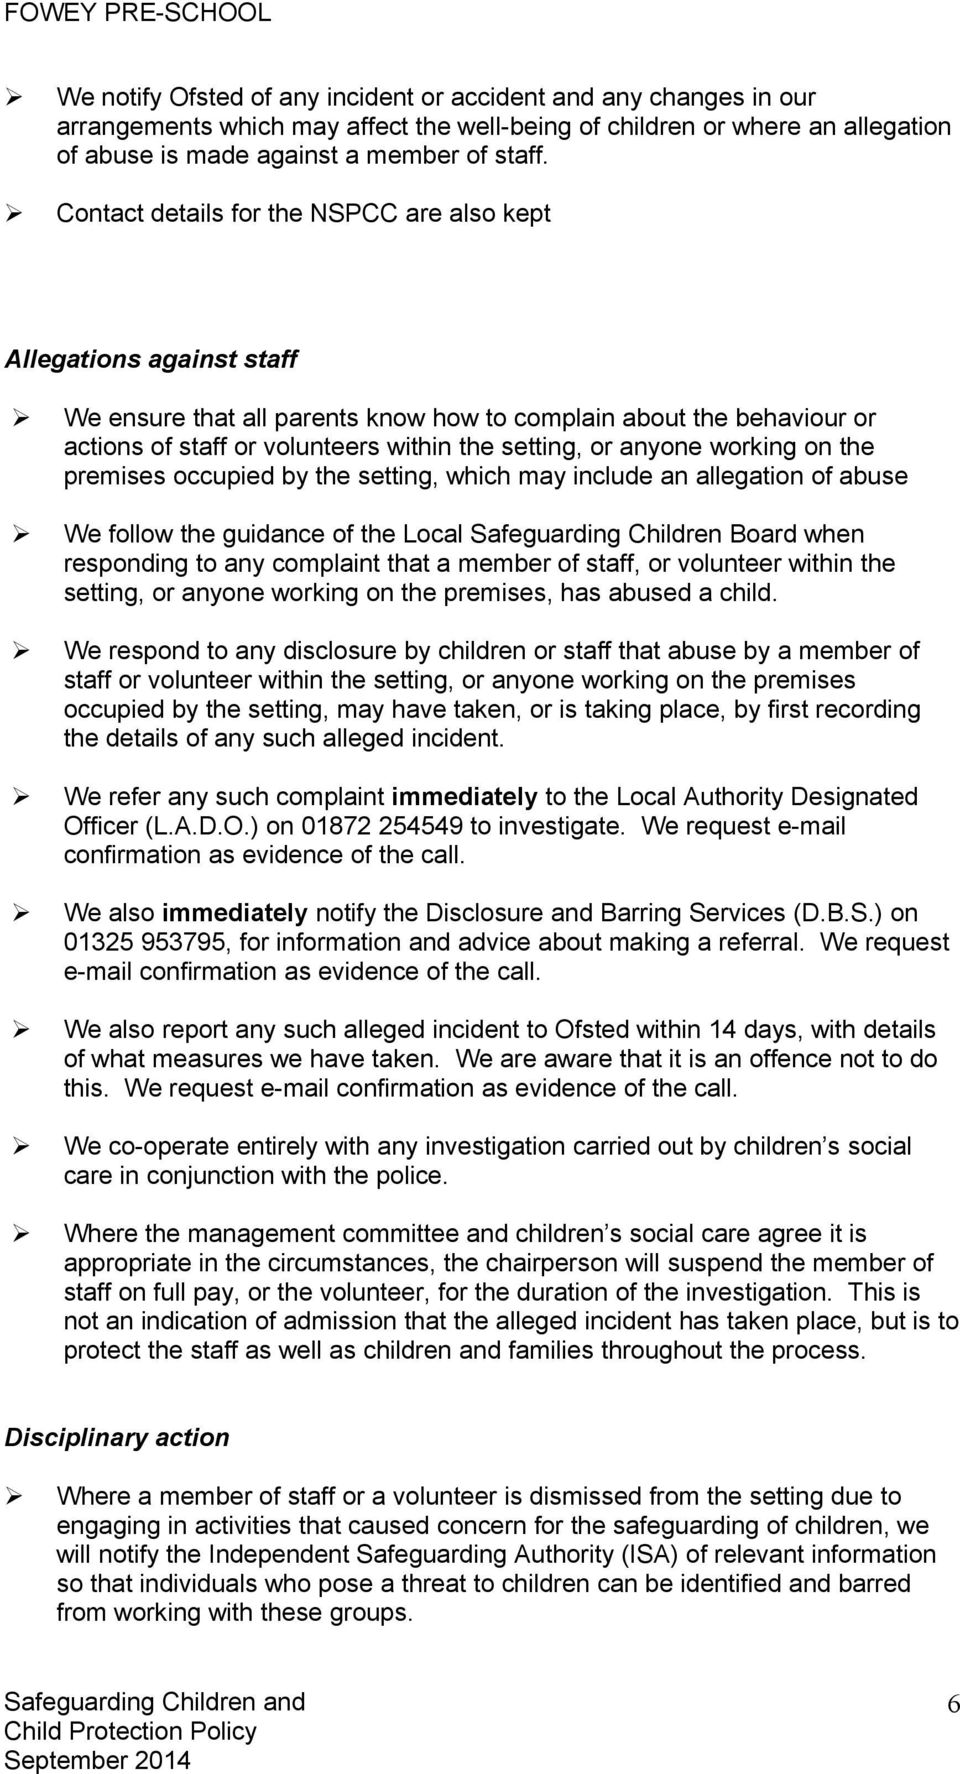 anyone working on the premises occupied by the setting, which may include an allegation of abuse We follow the guidance of the Local Safeguarding Children Board when responding to any complaint that